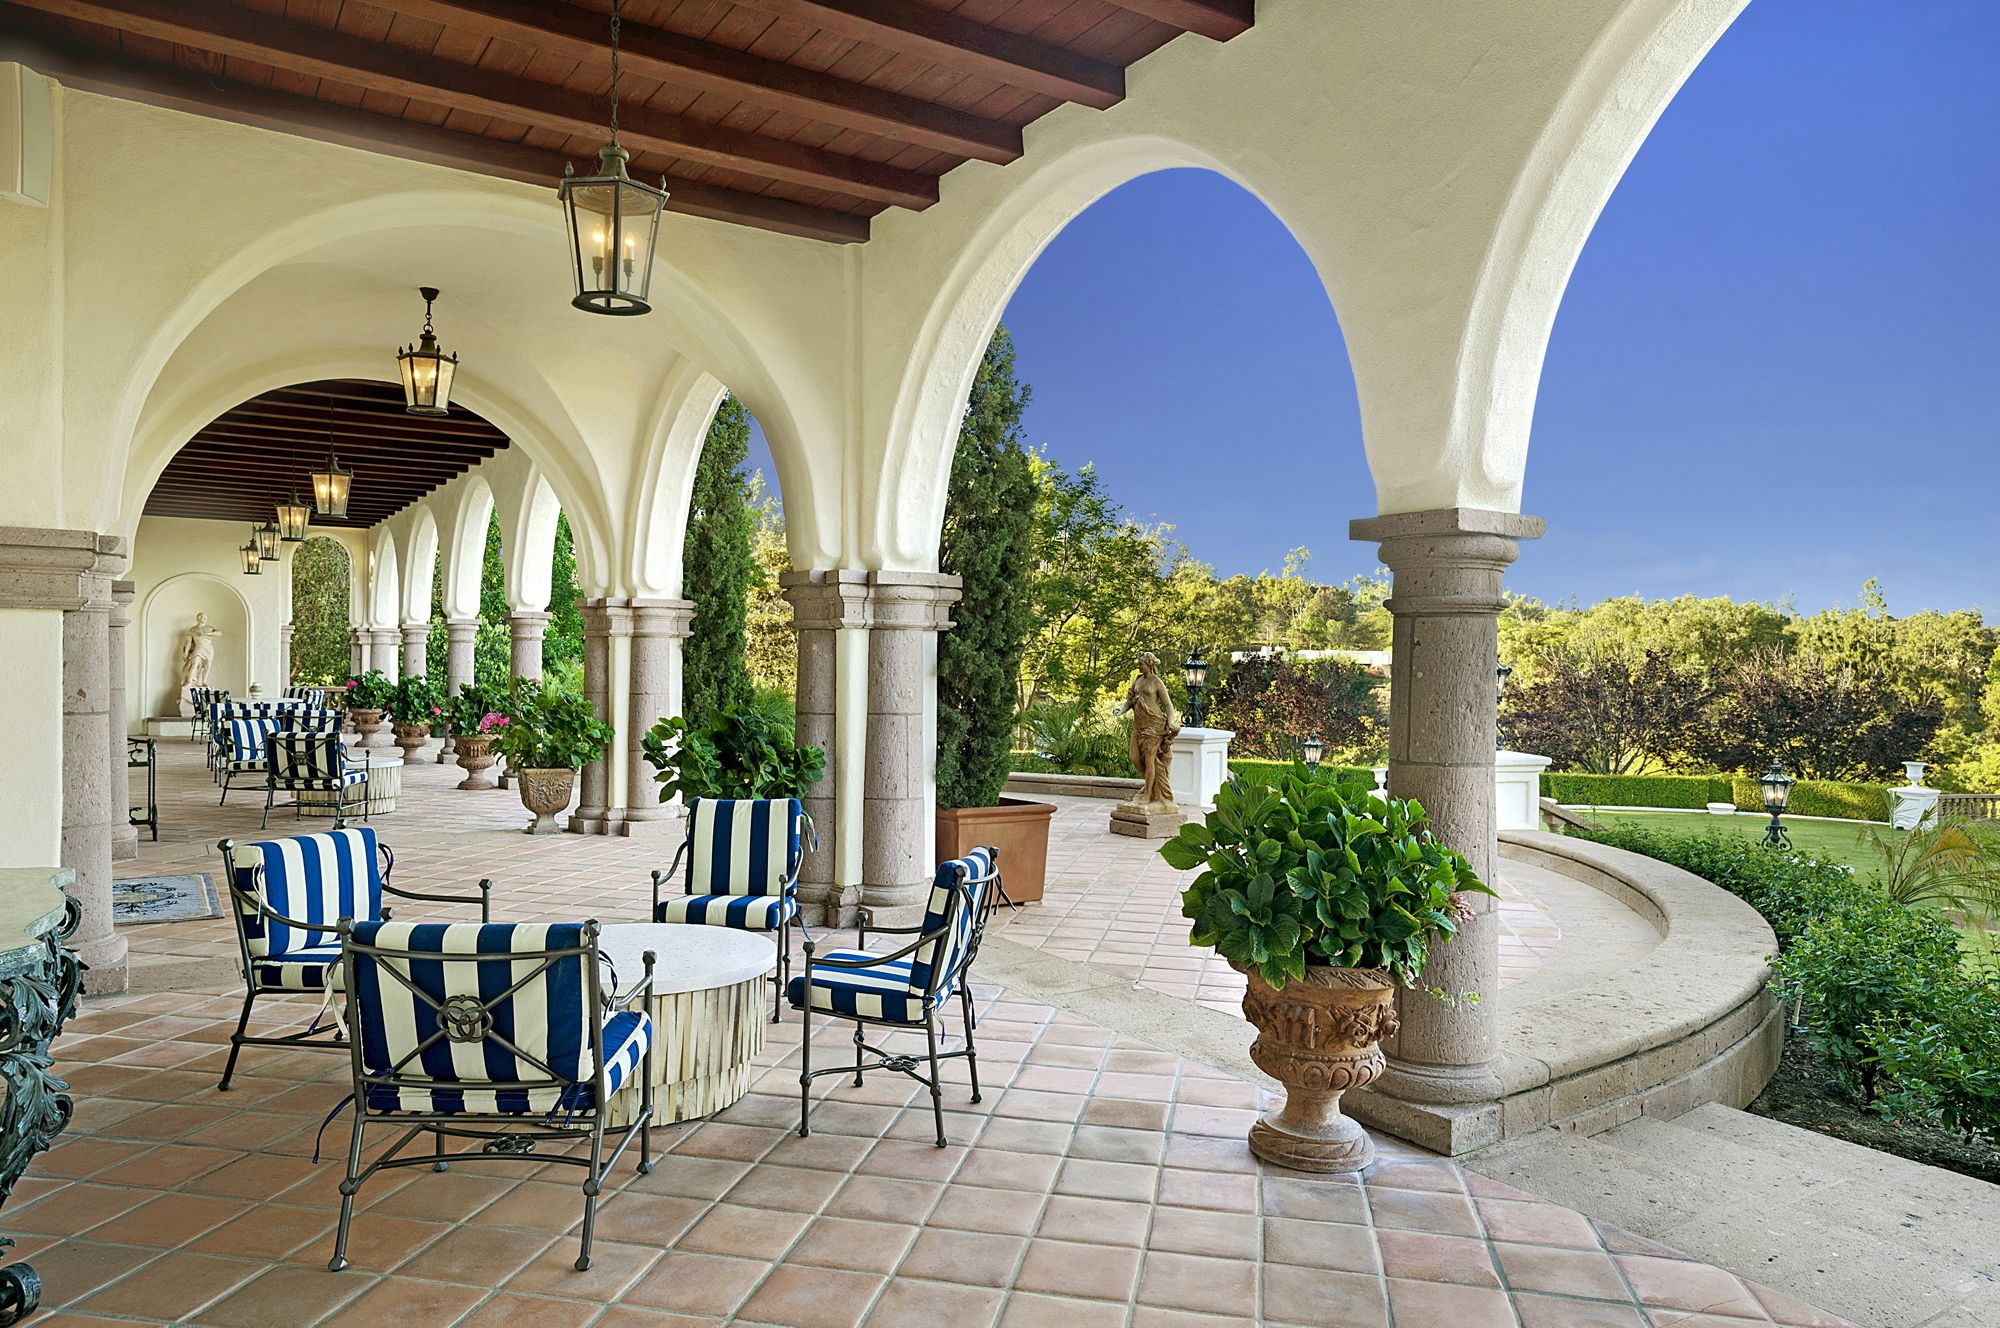 Concierge Auctions, El Milagro, california, real estate